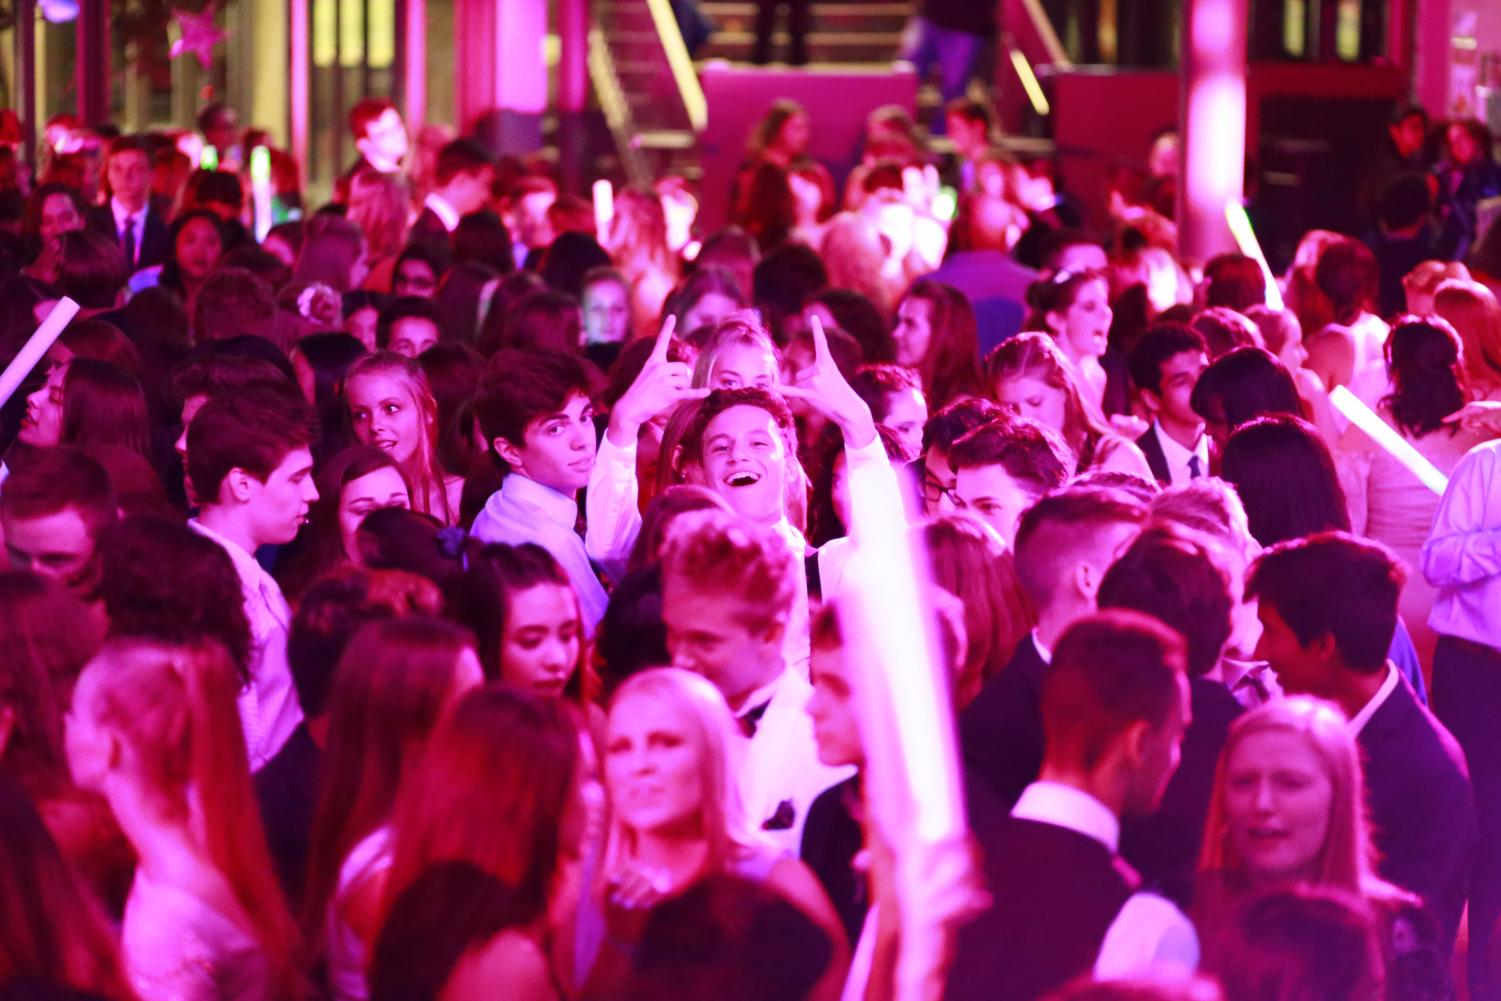 HOMECOMING 2018: Bright lights bathe dancing students in a pink glow at Issaquah High's out of this world homecoming dance.